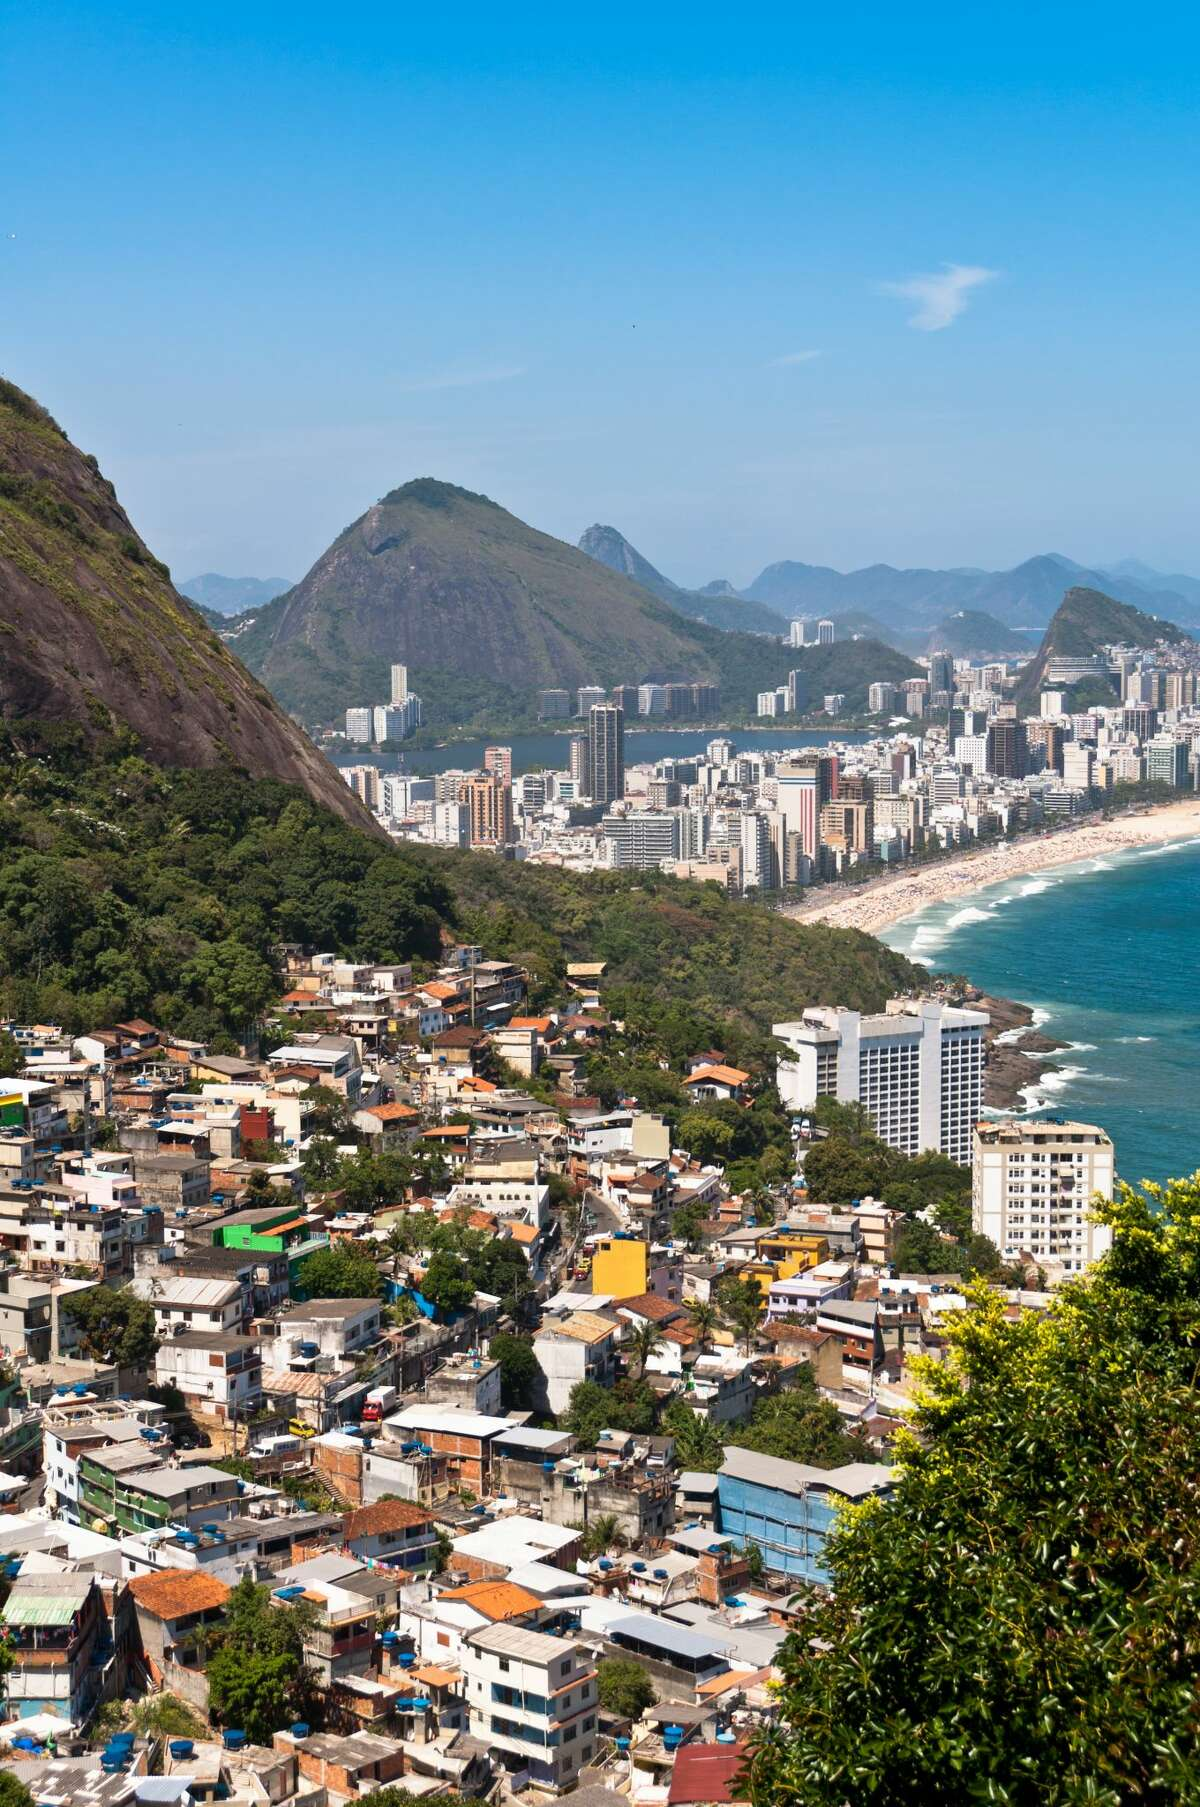 """In """"Bunker Bay Area,"""" """"manicured, highly protected neighborhoods are surrounded by slums."""" This is a situation similar to that in Latin American cities, """"where the poorest and the richest inhabit distinct worlds right on top of one another."""" Above is an aerial view of Ipanema and Leblon Beach and Vidigal Favela, Rio de Janeiro, Brazil."""